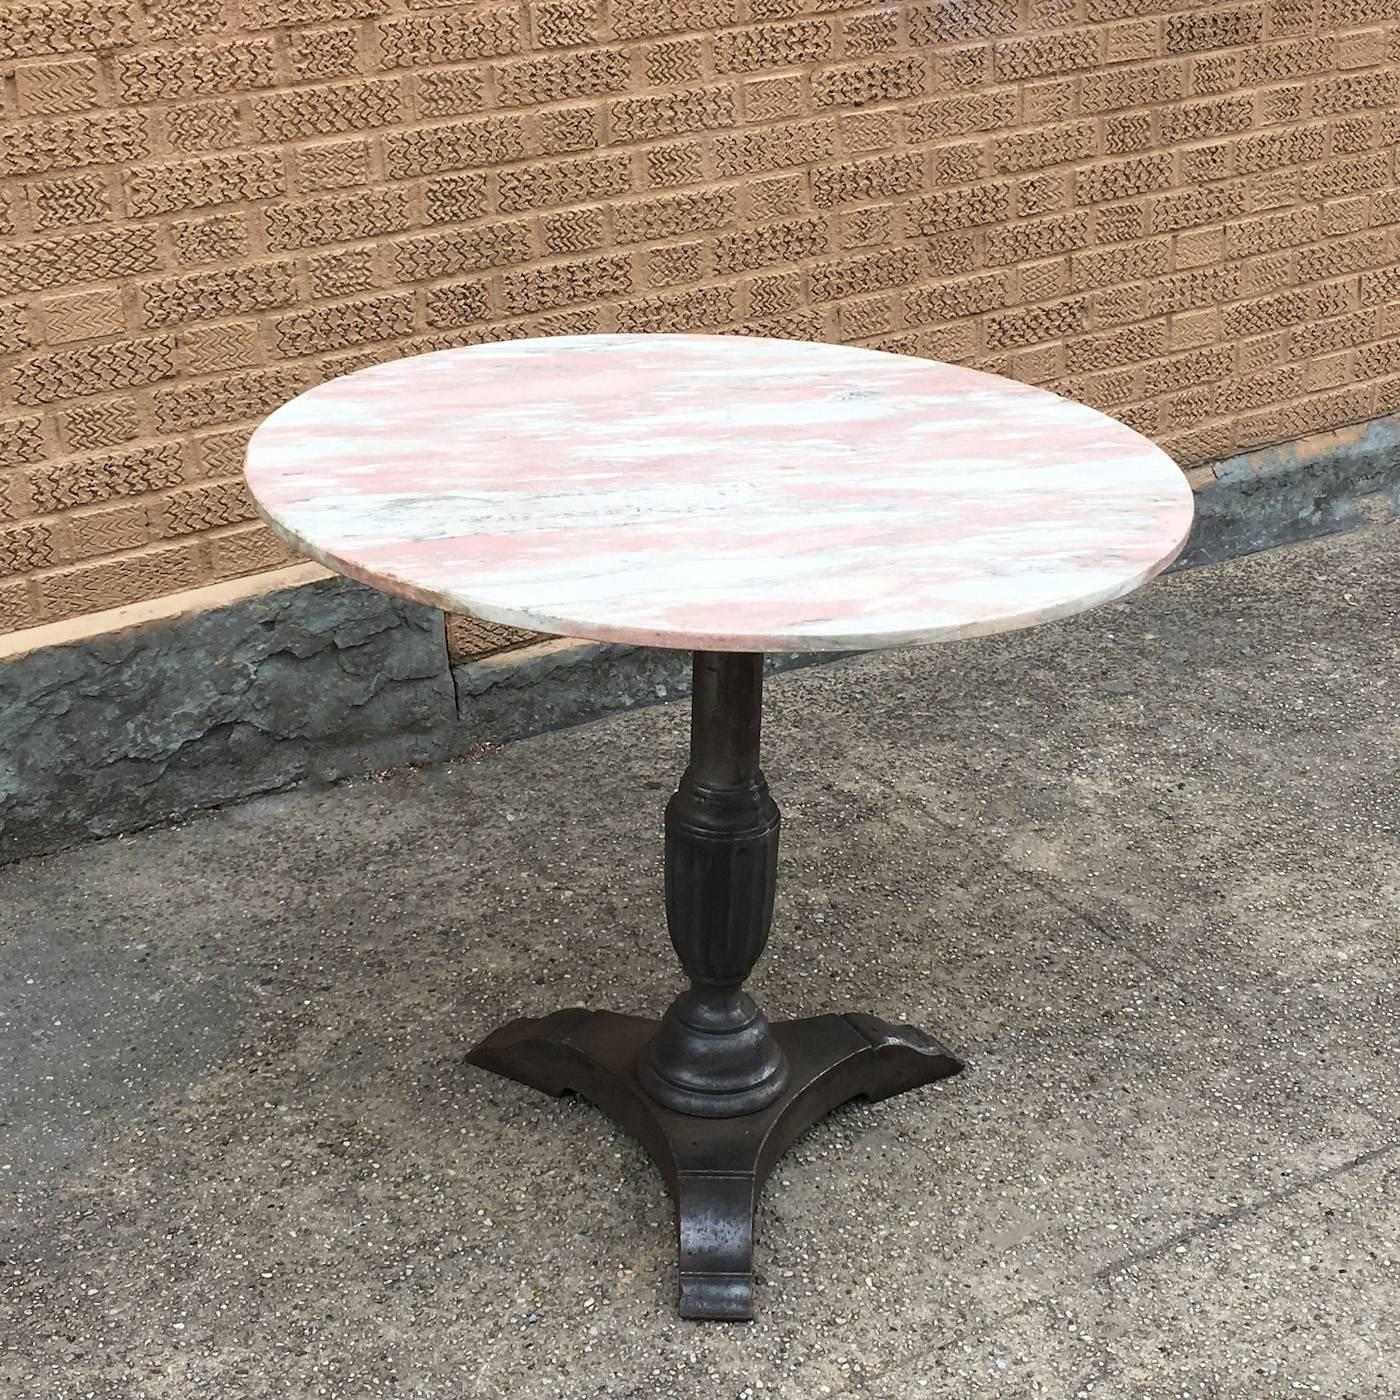 The Foundry Ii Cafe Rollins Dining Table Art Furniture: 1930s Round Pink Marble And Cast Iron Bistro Café Pedestal